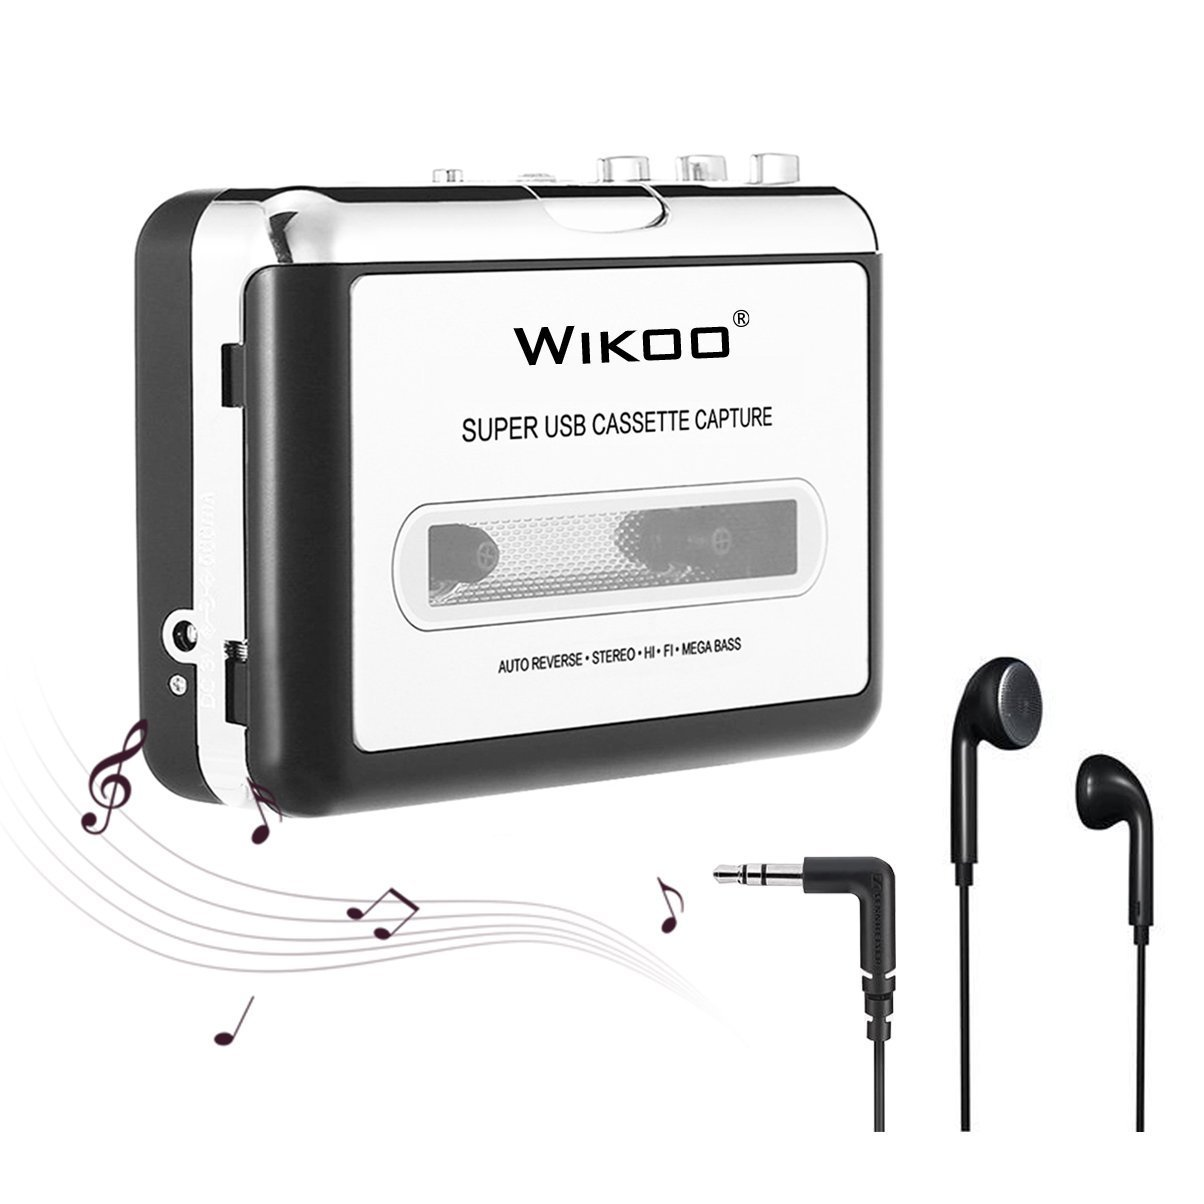 Wikoo Cassette to MP3 Converter Tape Player, Convert Cassette to MP3, Comes with Software and Earphone